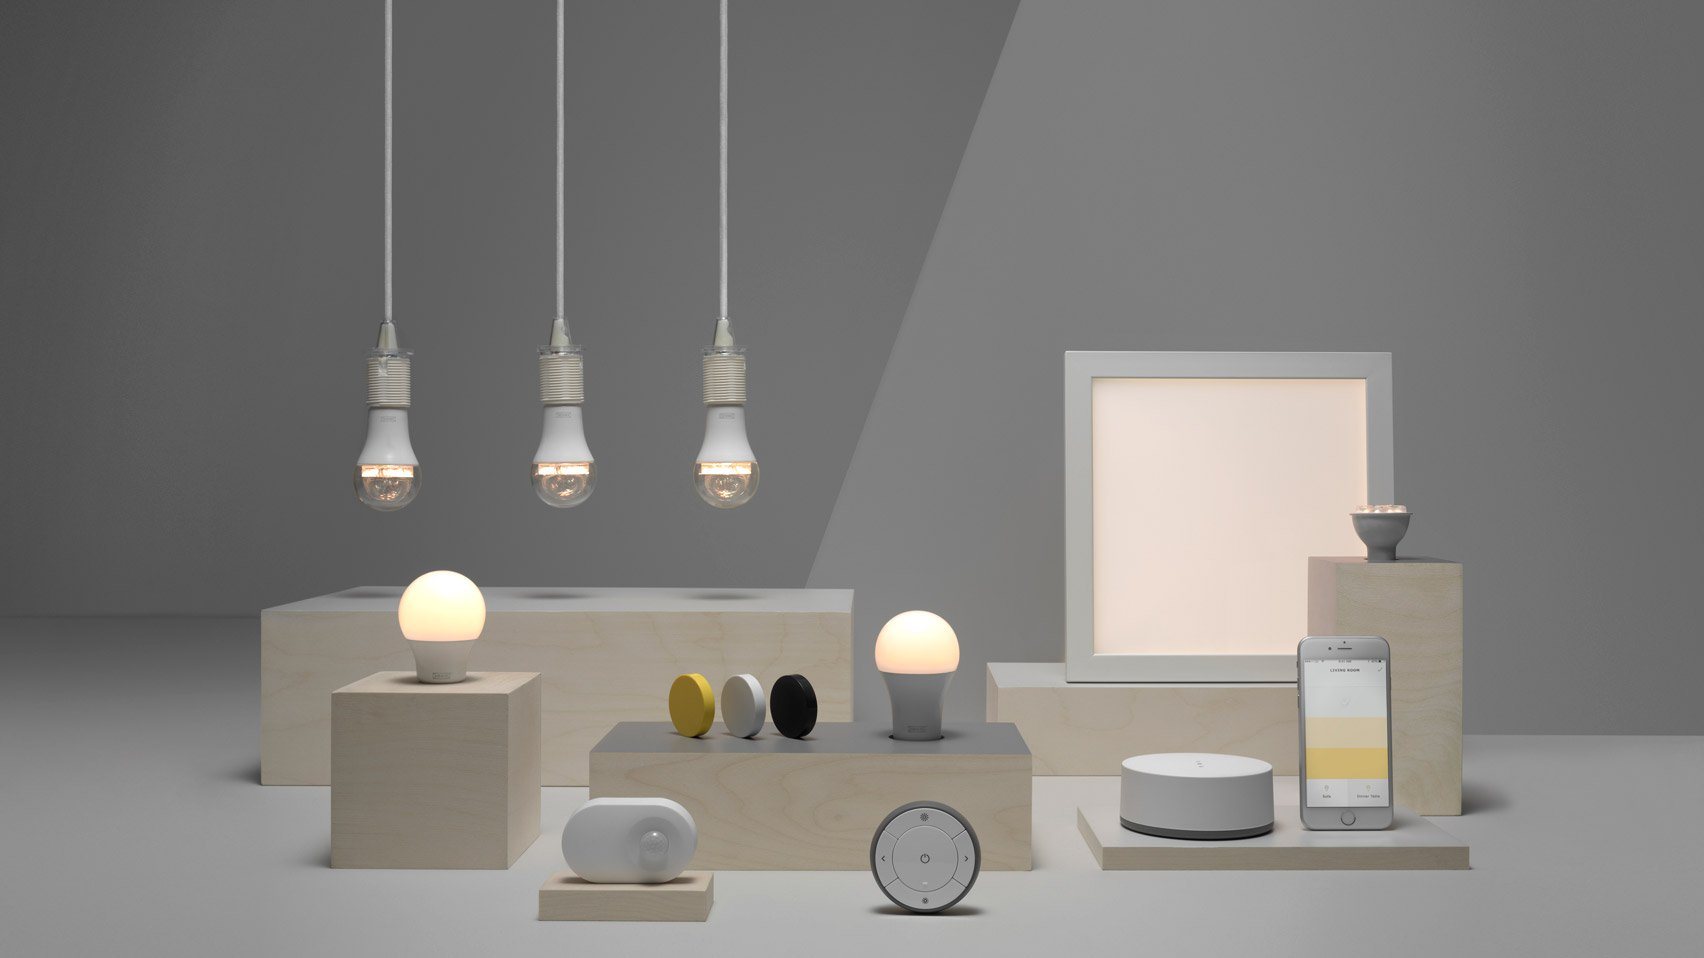 Ikea Trådfri smart lights will get support for Assistant ... - photo#7